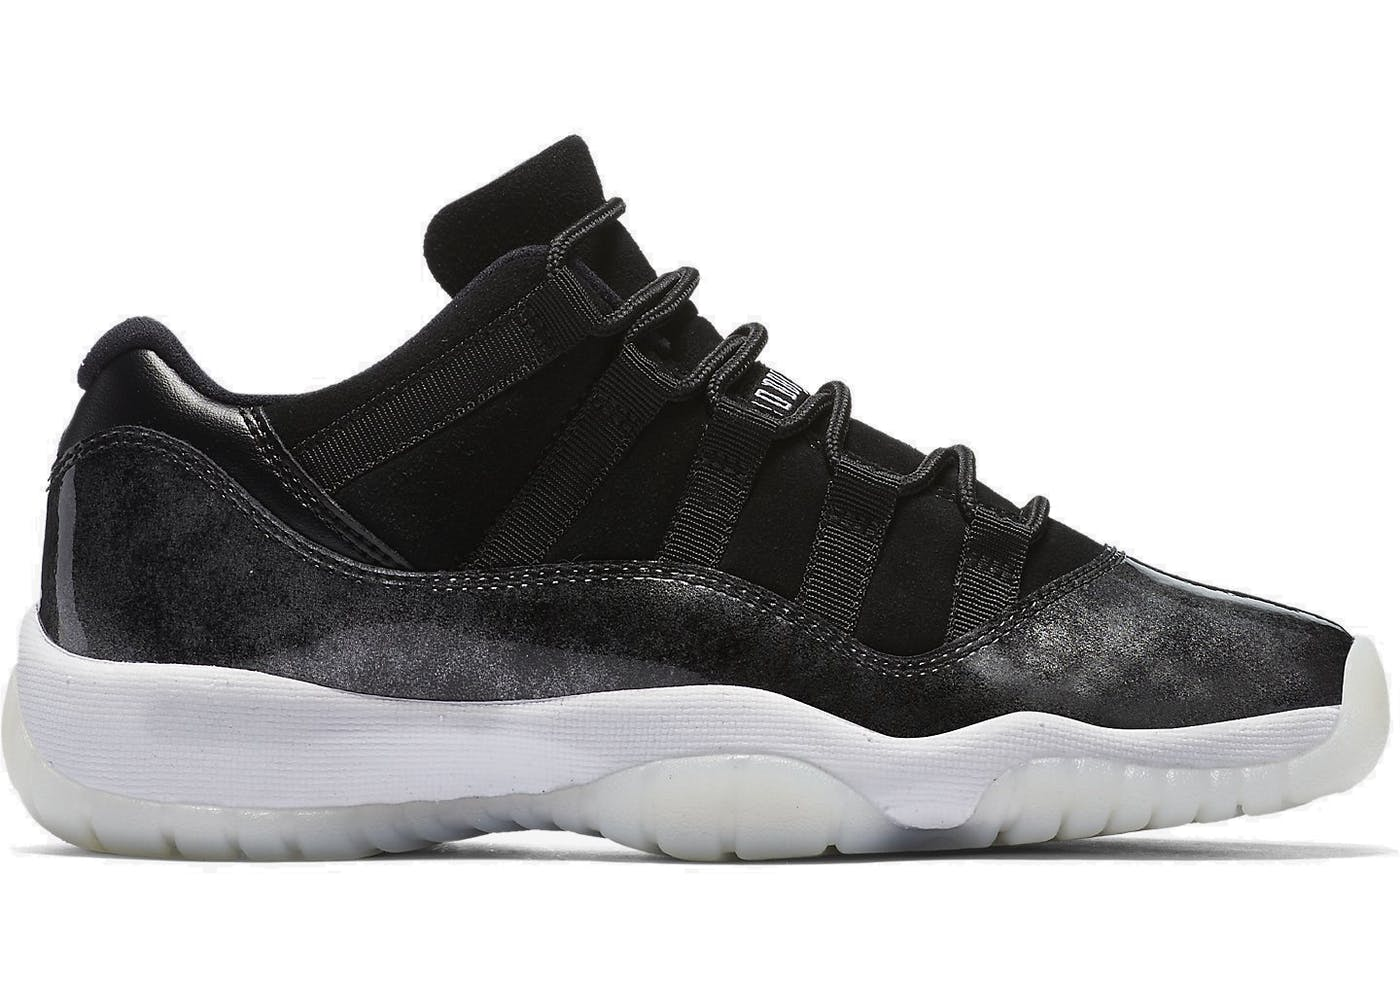 jordan 11 low barons